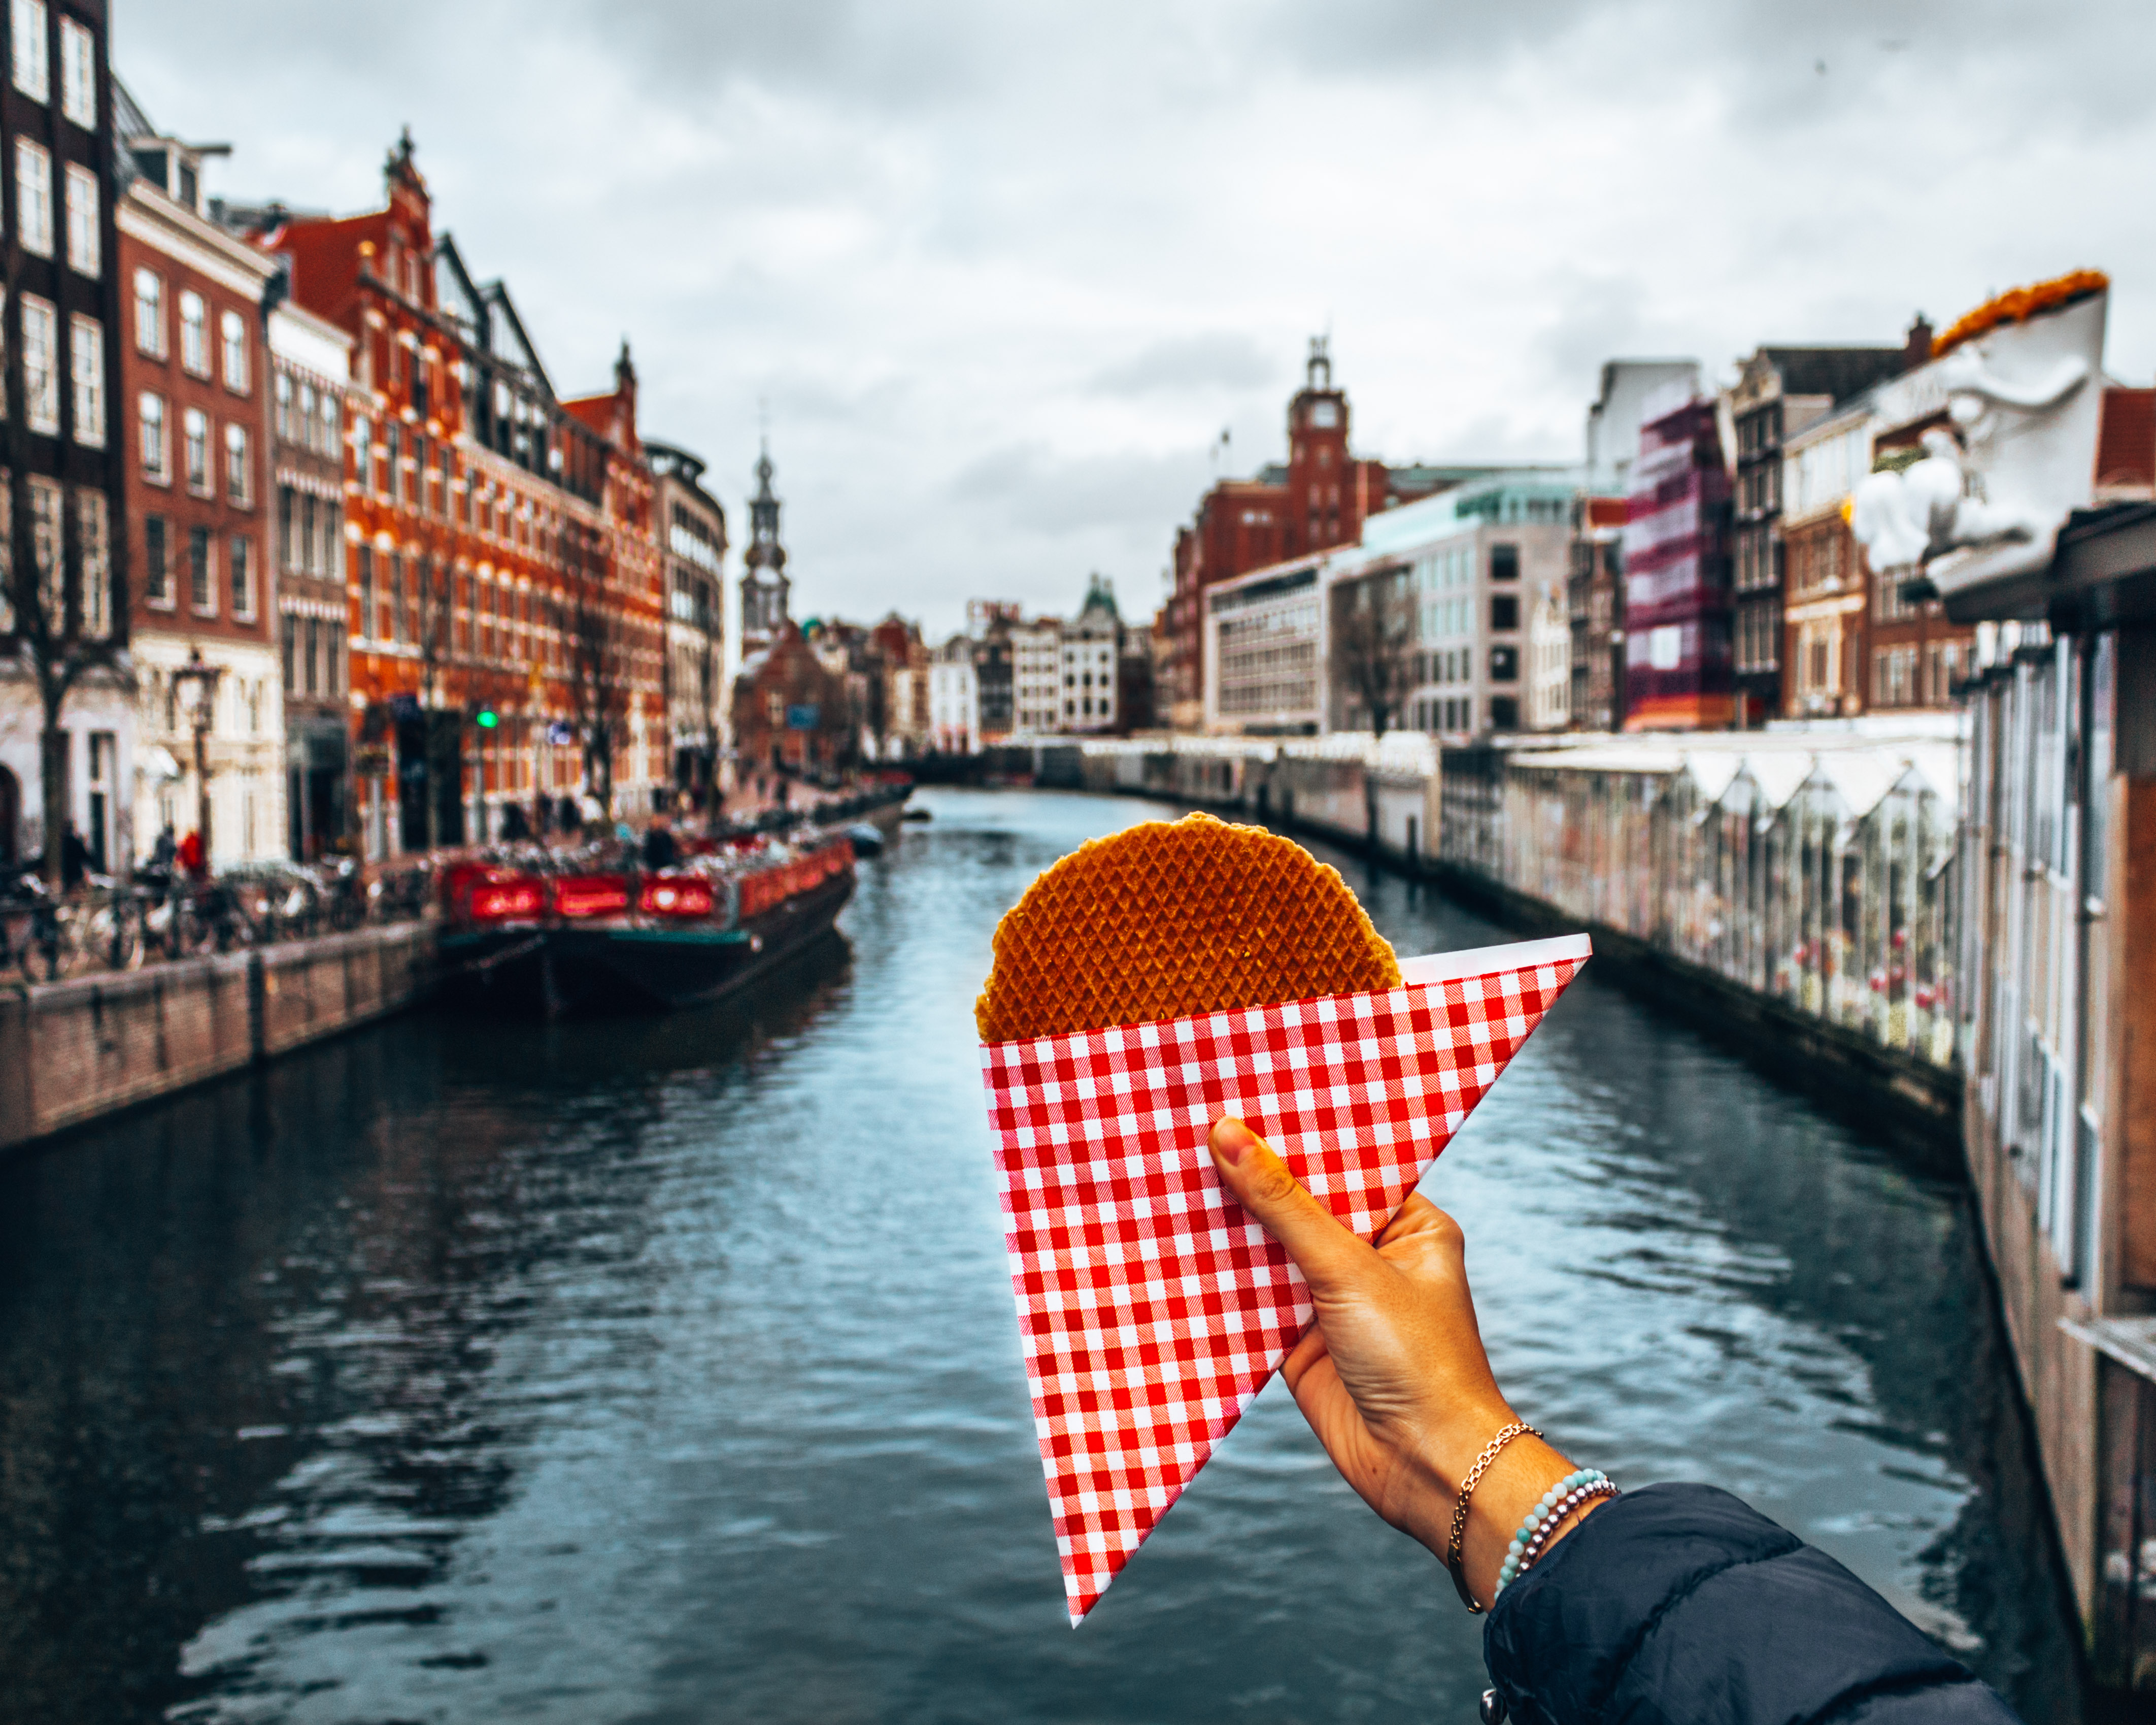 Delicious stroopwafel in Amsterdam, Netherlands